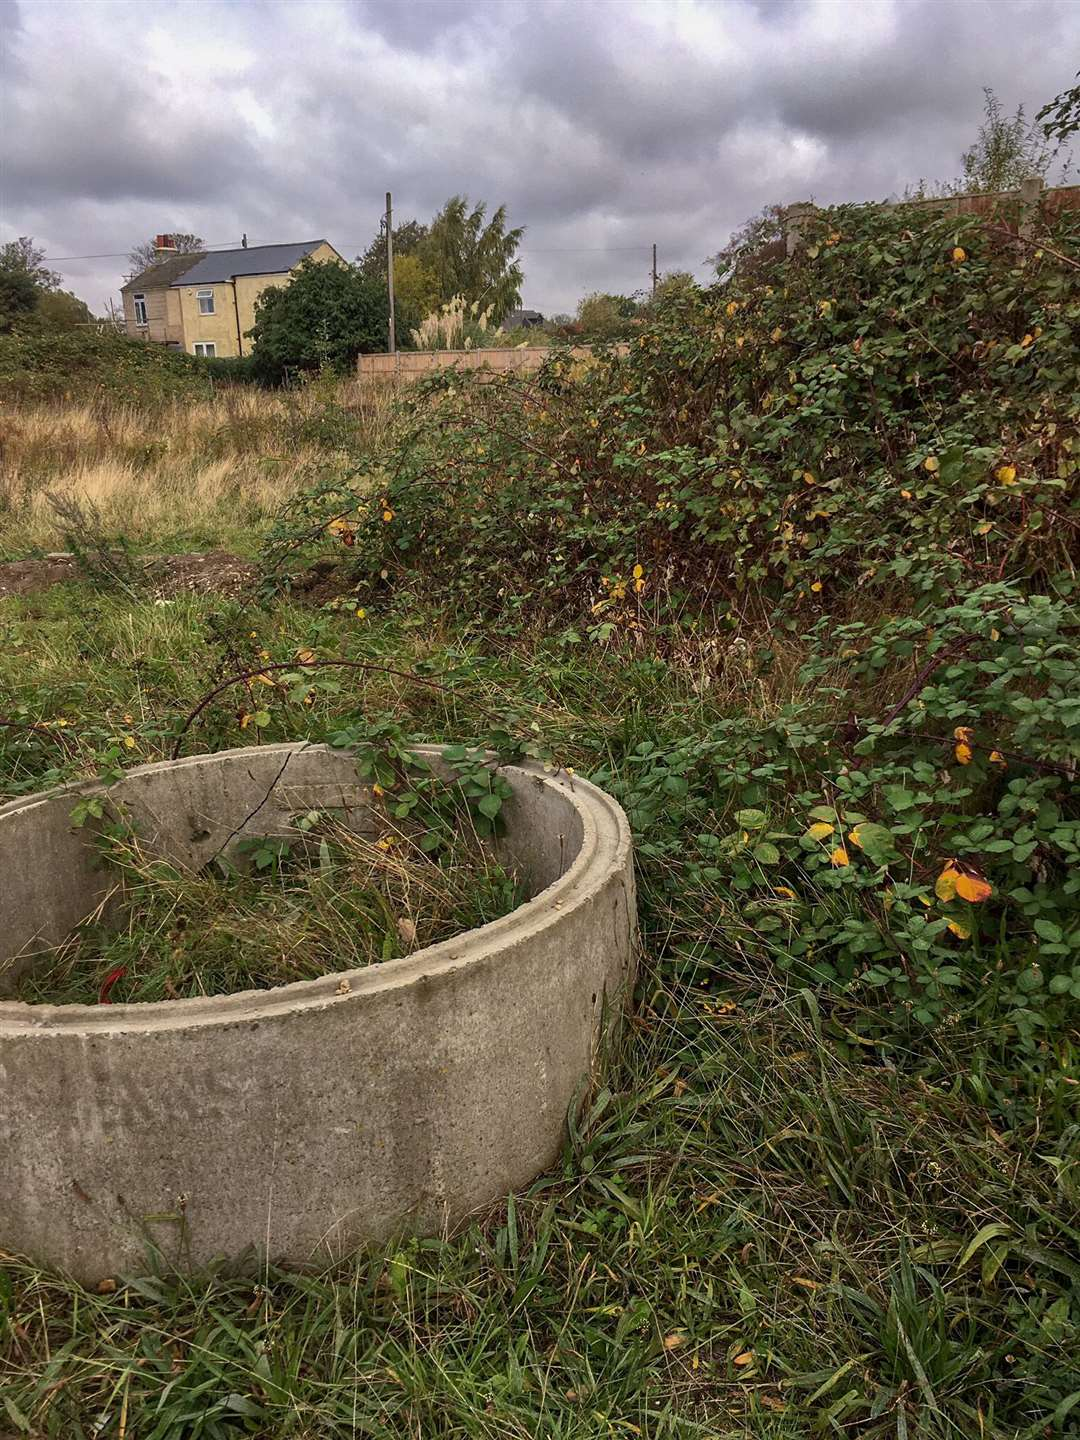 Residents on the Cromwell Gardens development in Wisbech are demanding developer Reason Homes complete the roads and pathways amid health and safety fears. This is supposed to a children's play area, instead it is an unsightly, overgrown mess, which is attracting rats. (11901660)